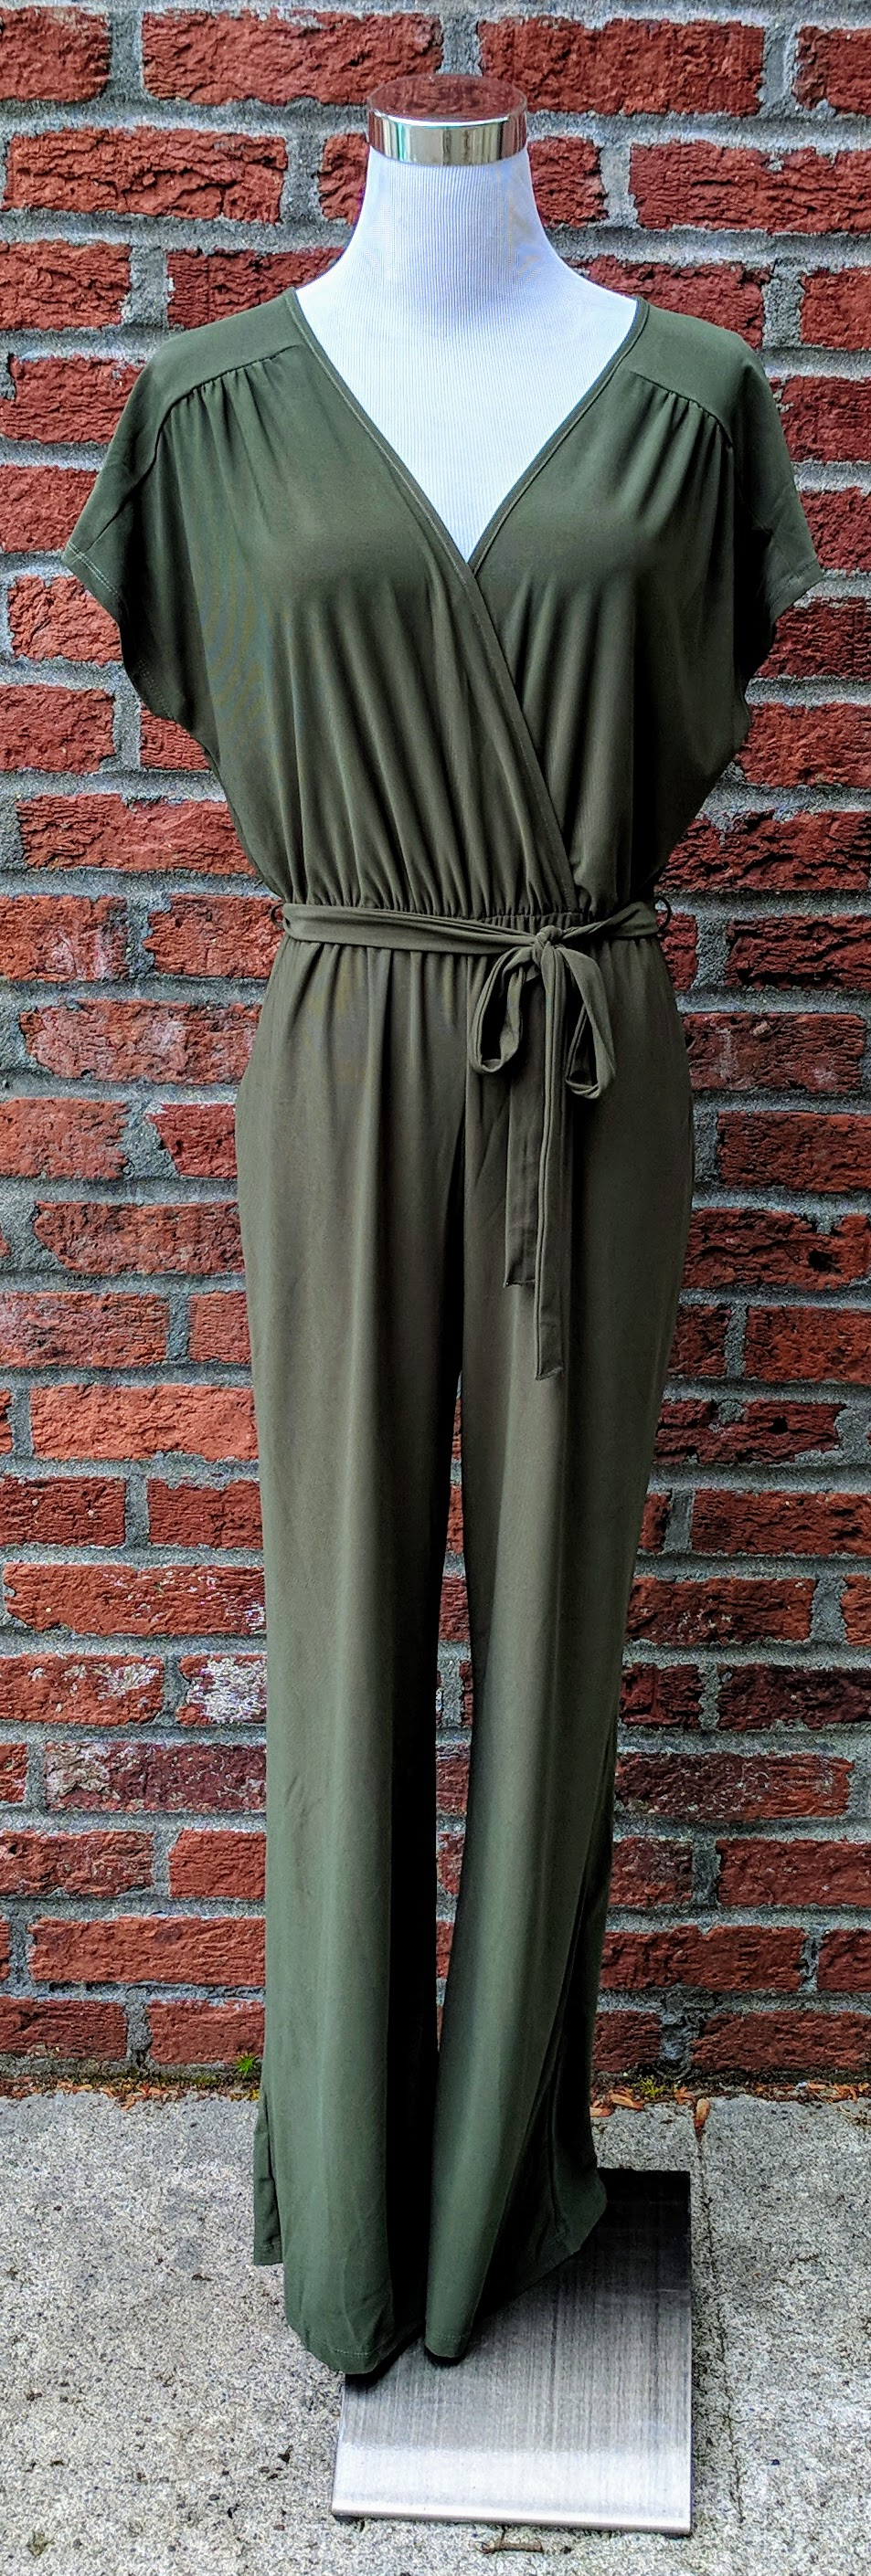 Olive jumpsuit with overlapped v-neckline and tie waist band.